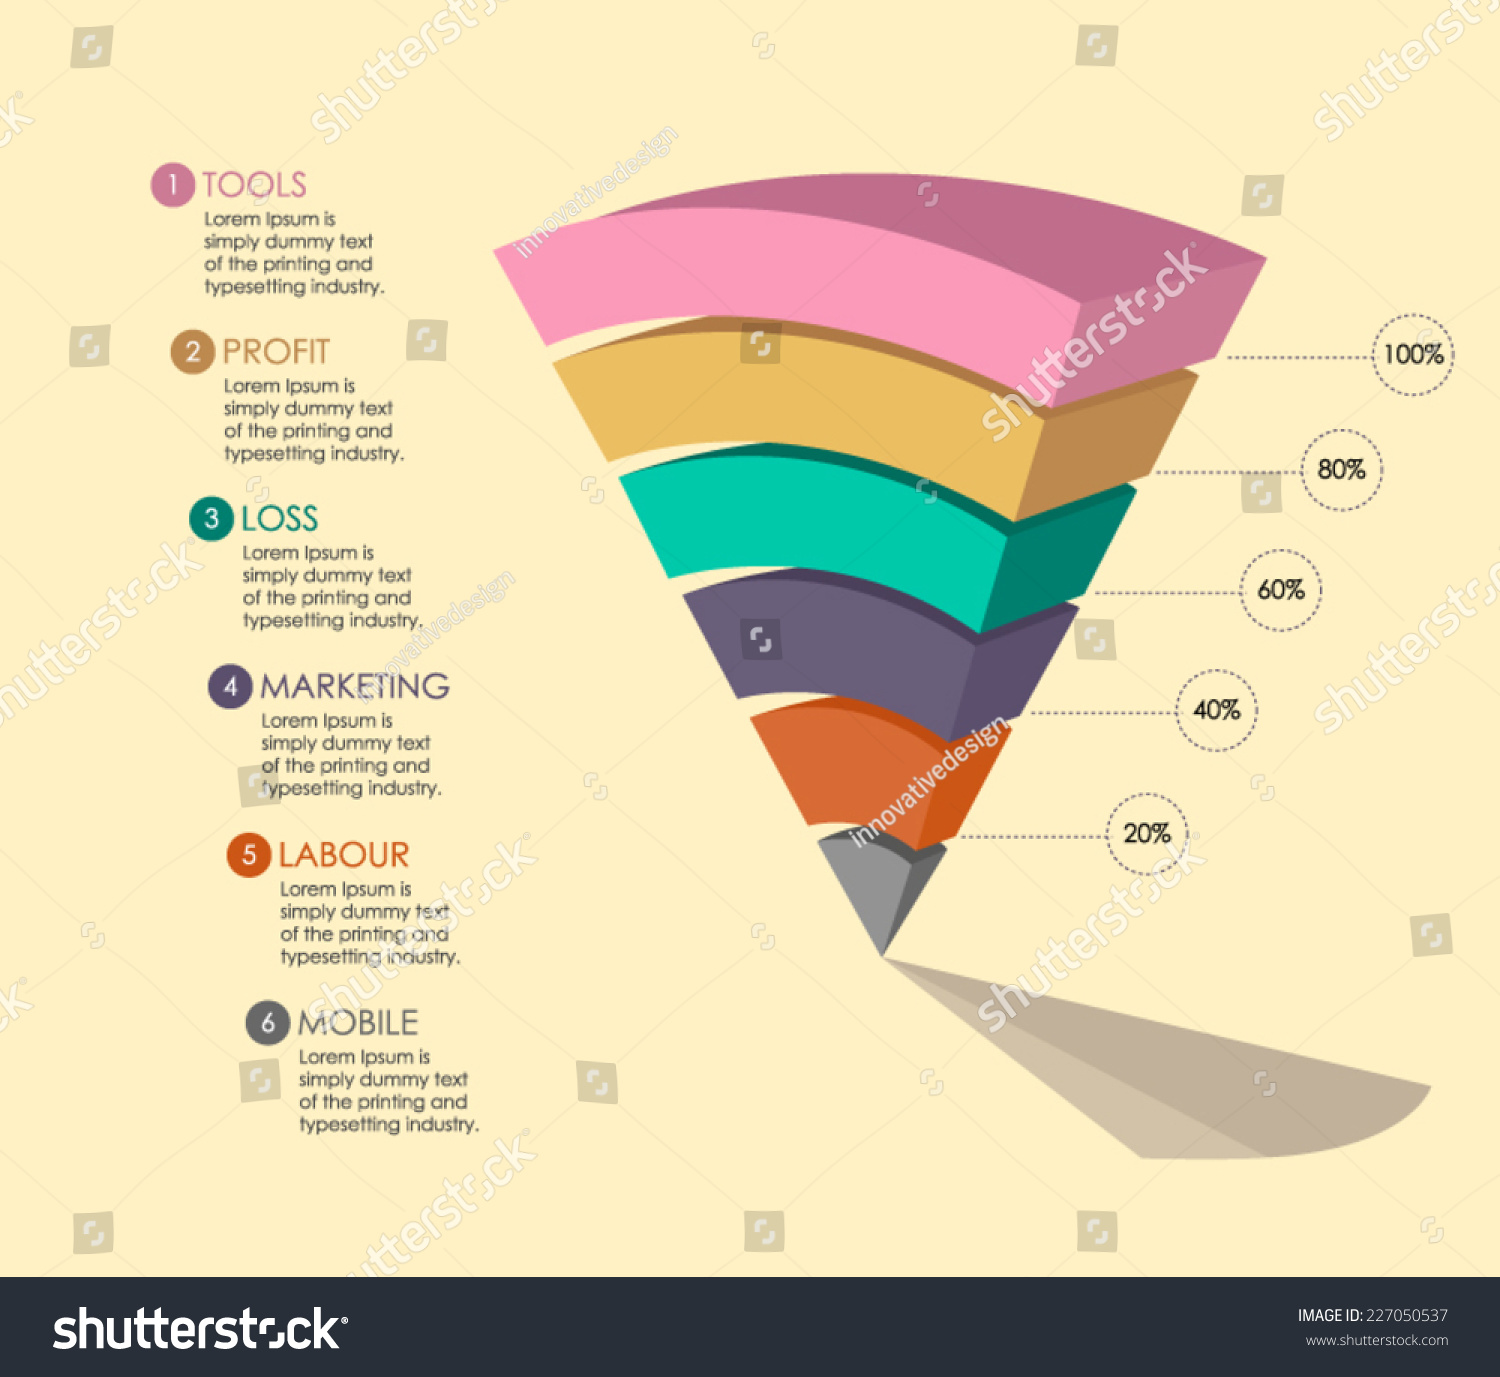 Pyramid Chart Vector You Use Your Stock Royalty Free Diagram Template For To In Business Proposal Or Presentation This